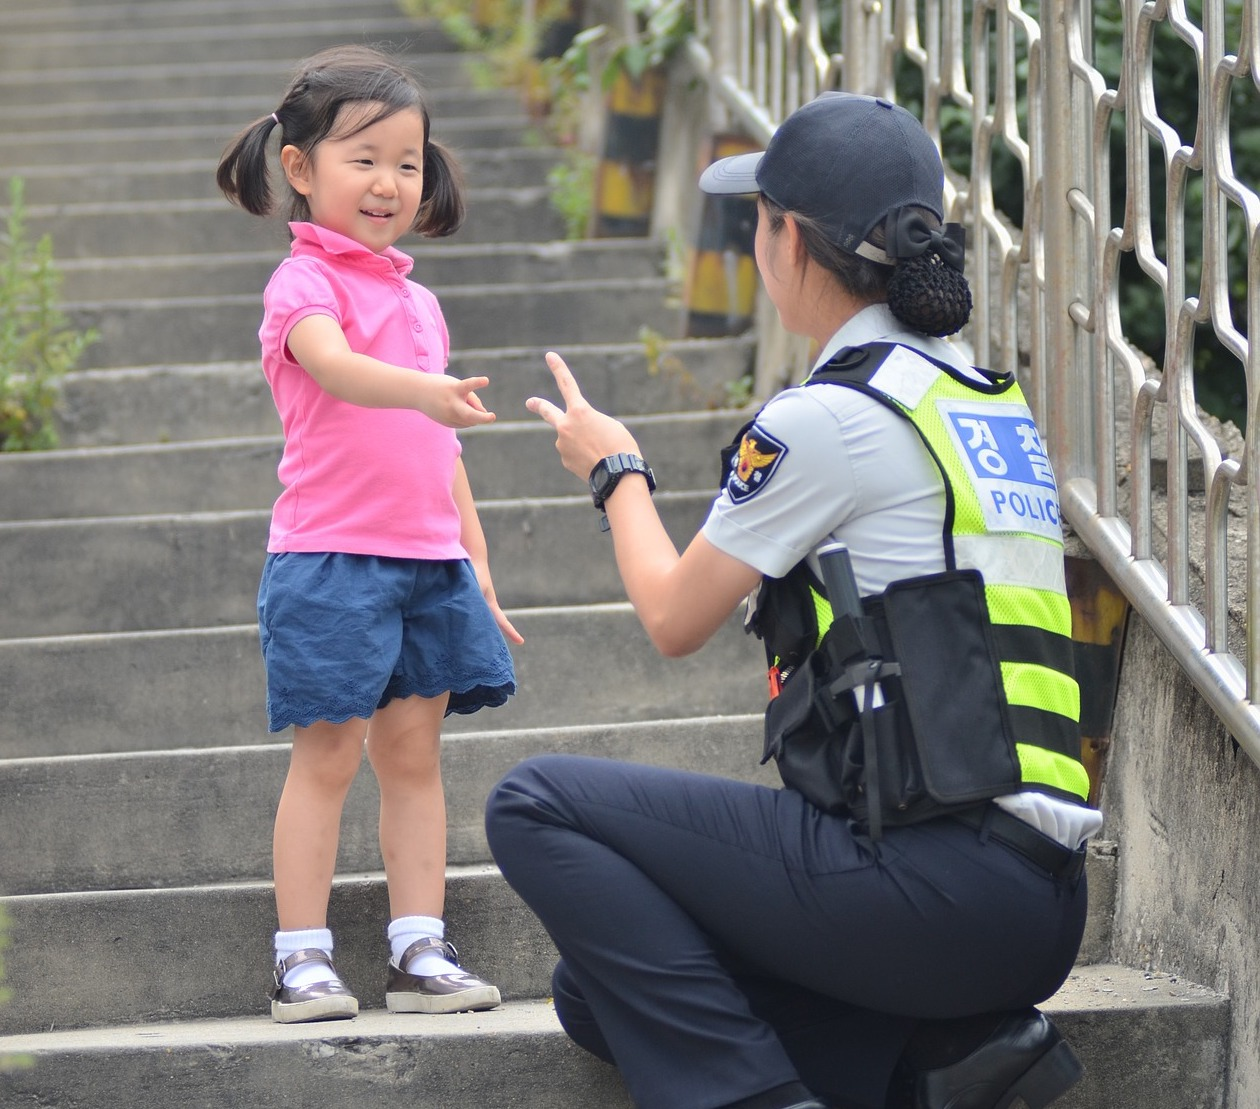 Child with Police Officer